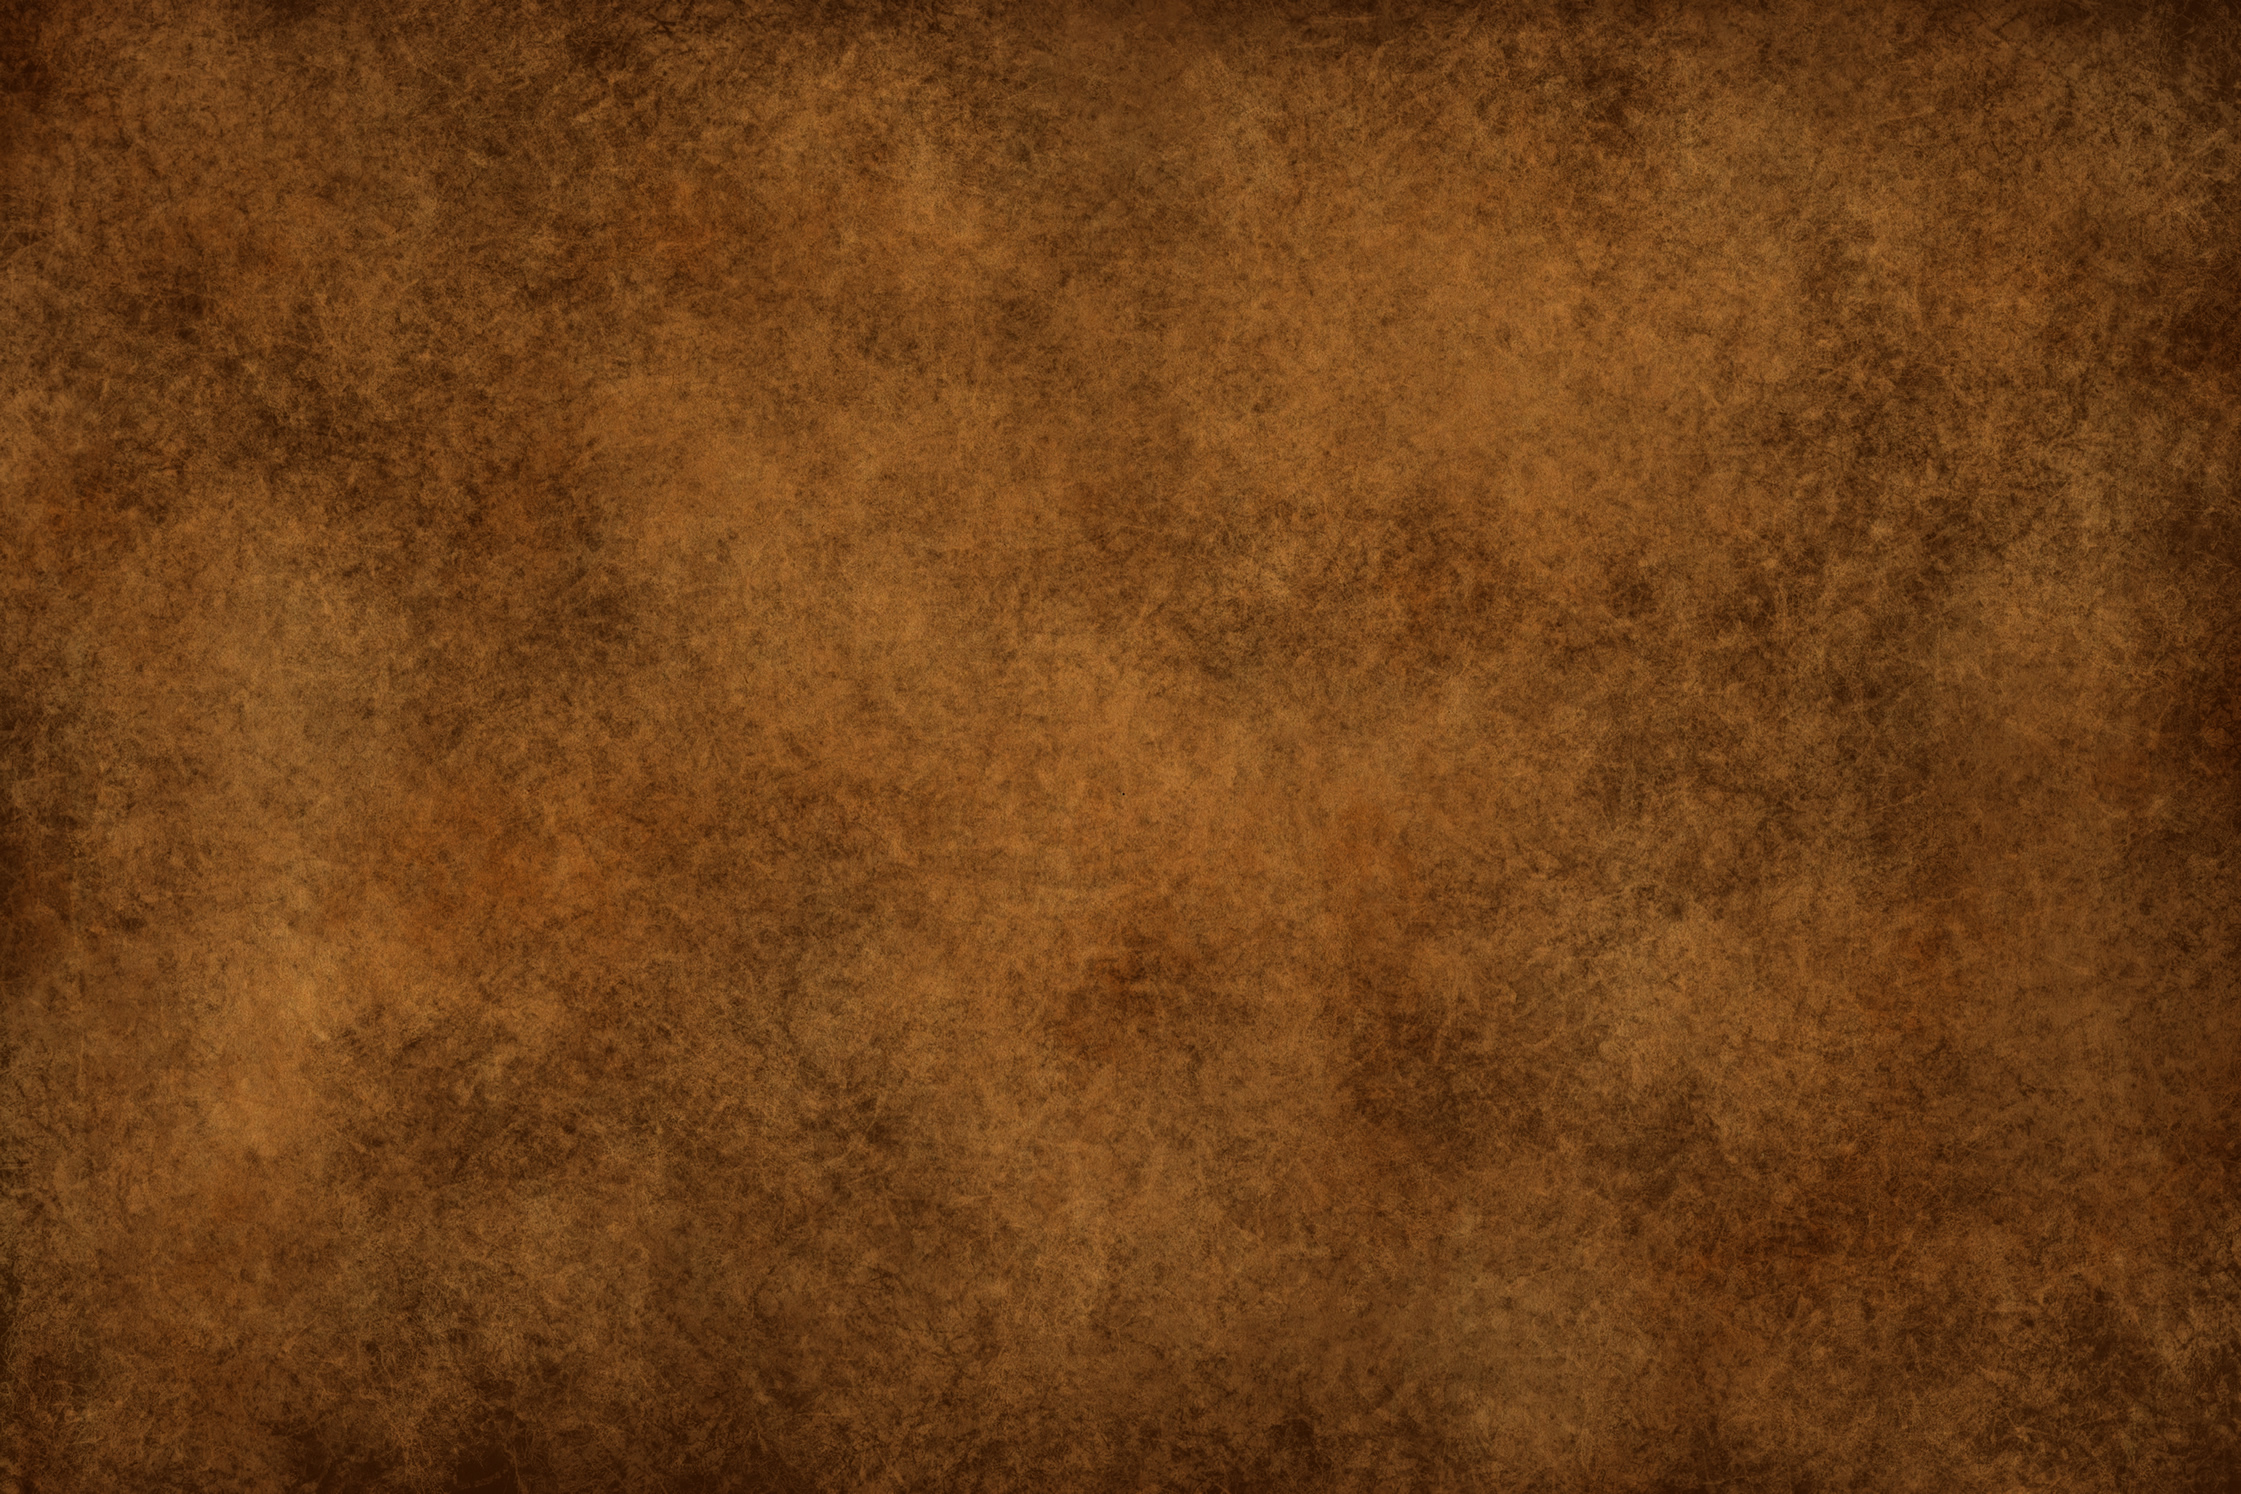 brown ragged old paper, background, texture, download free